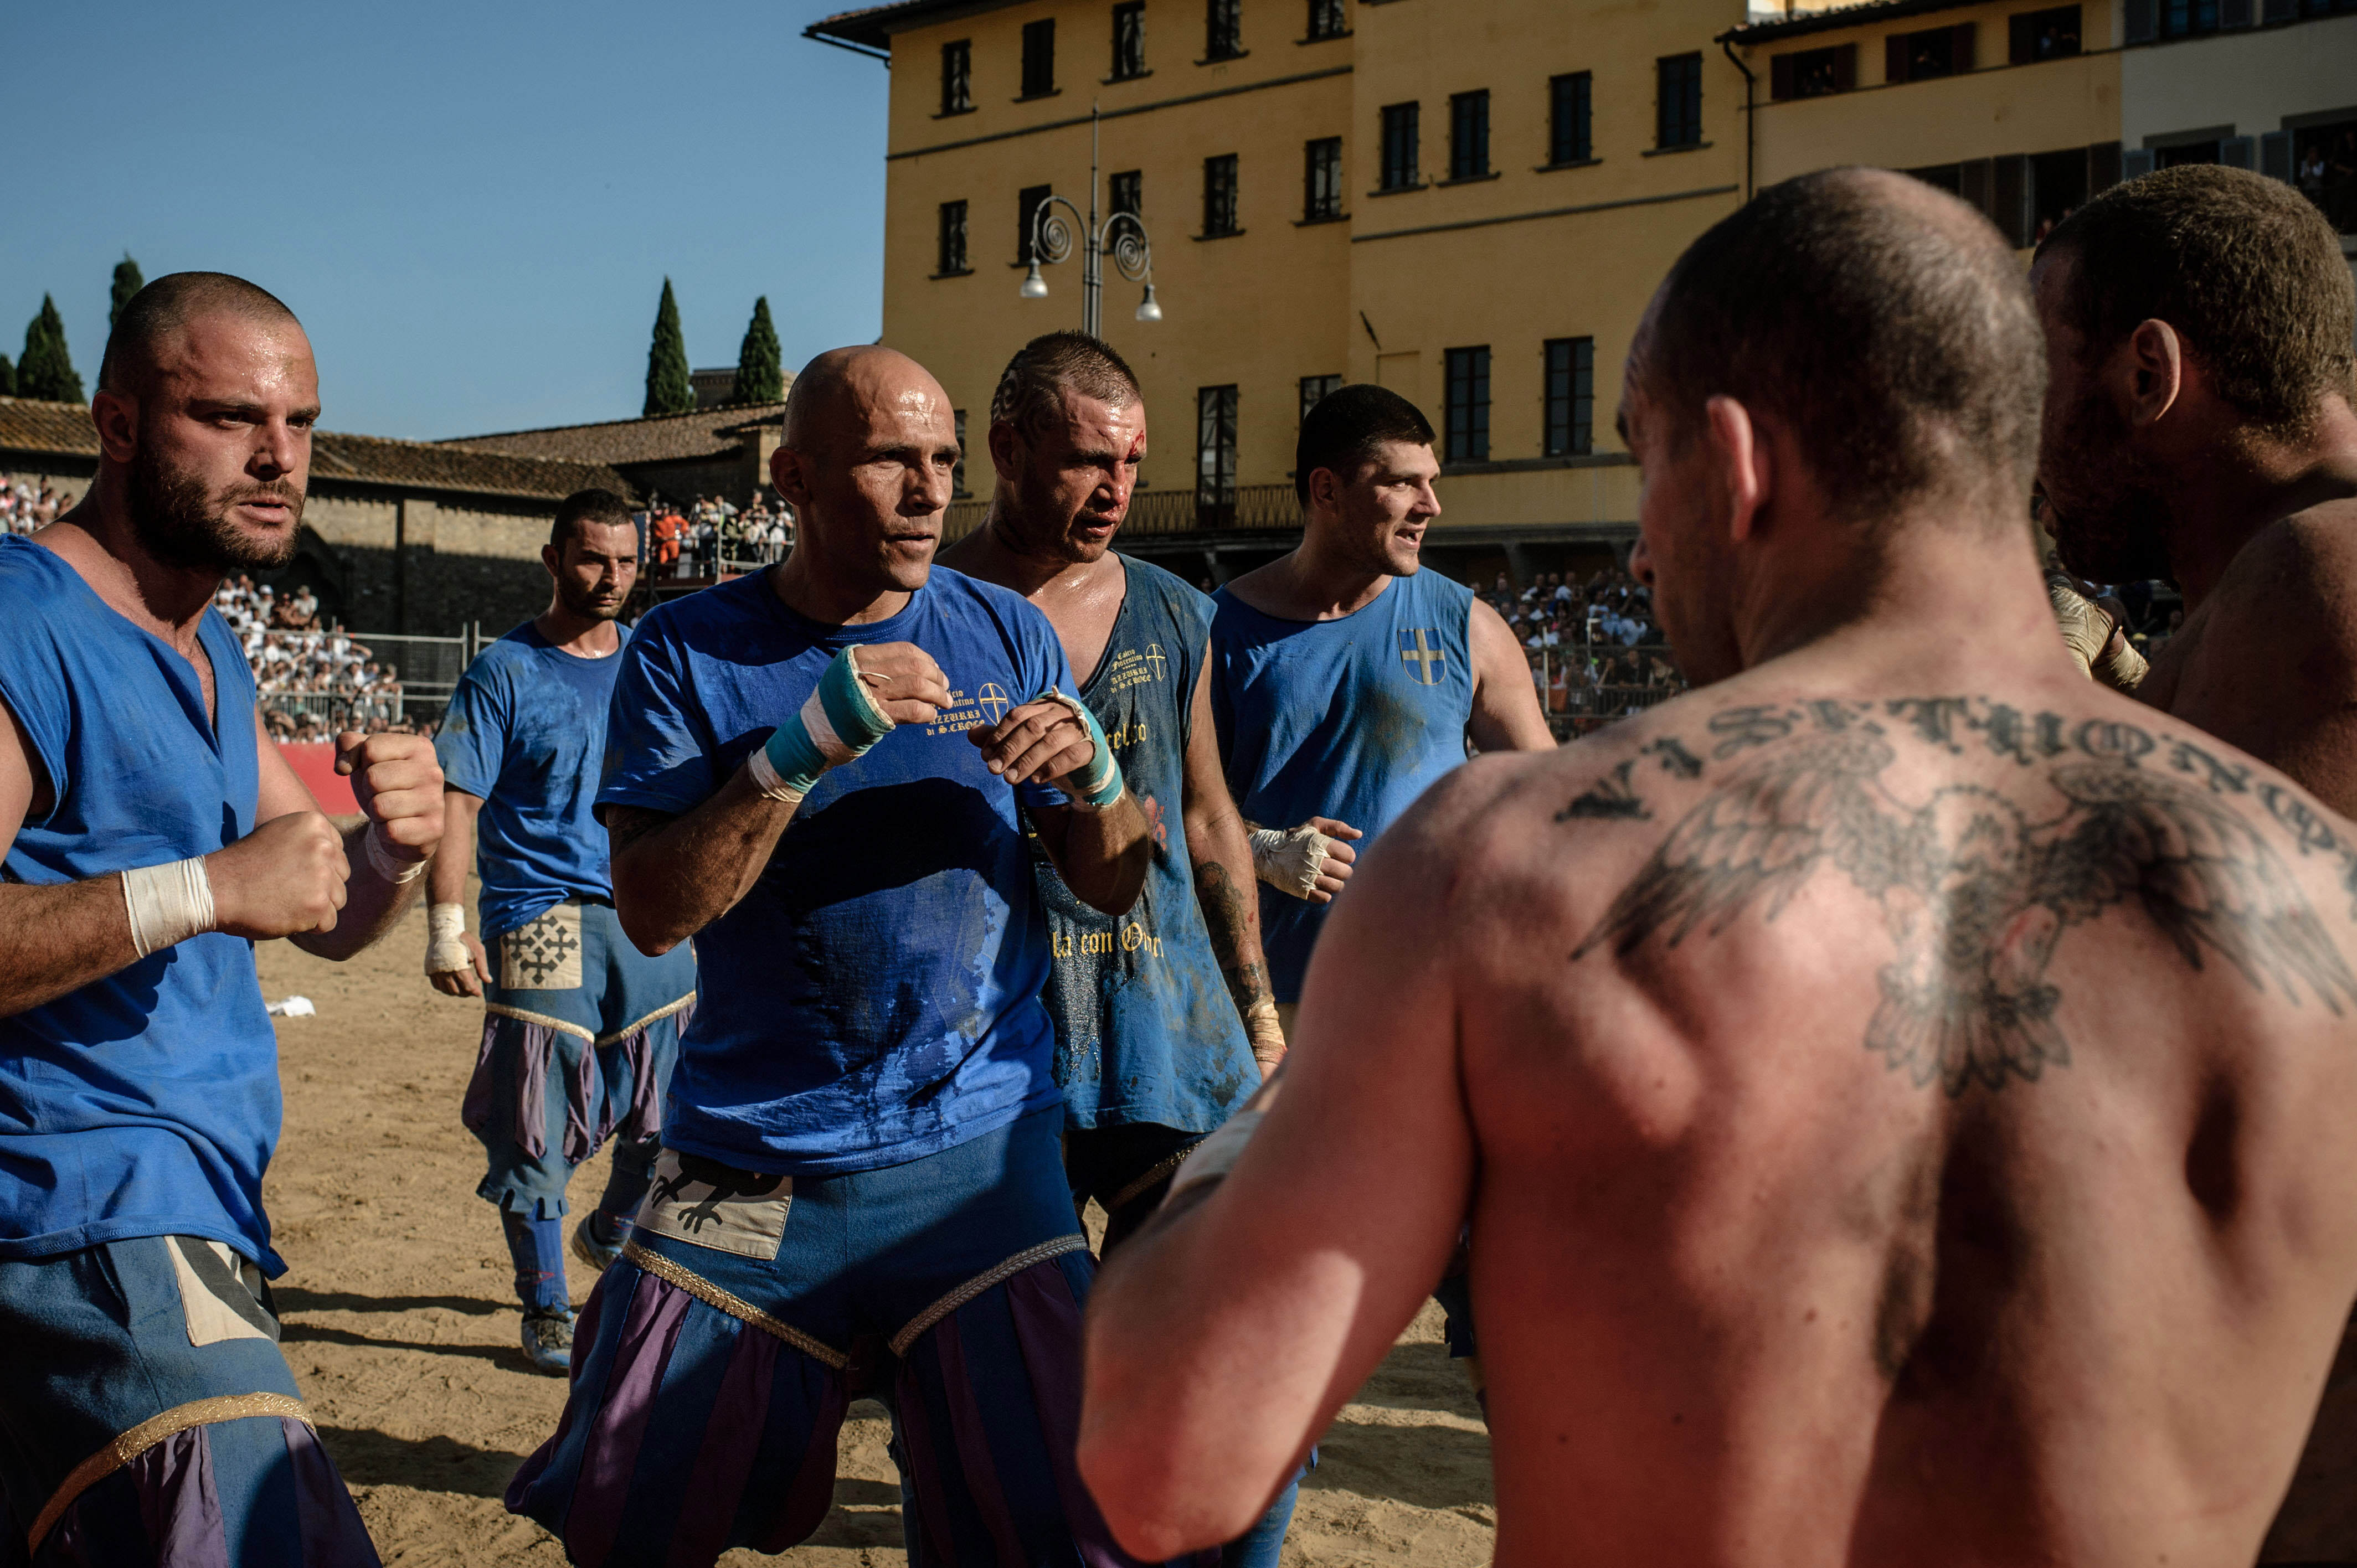 The Modern-Day Gladiators of Calcio Storico